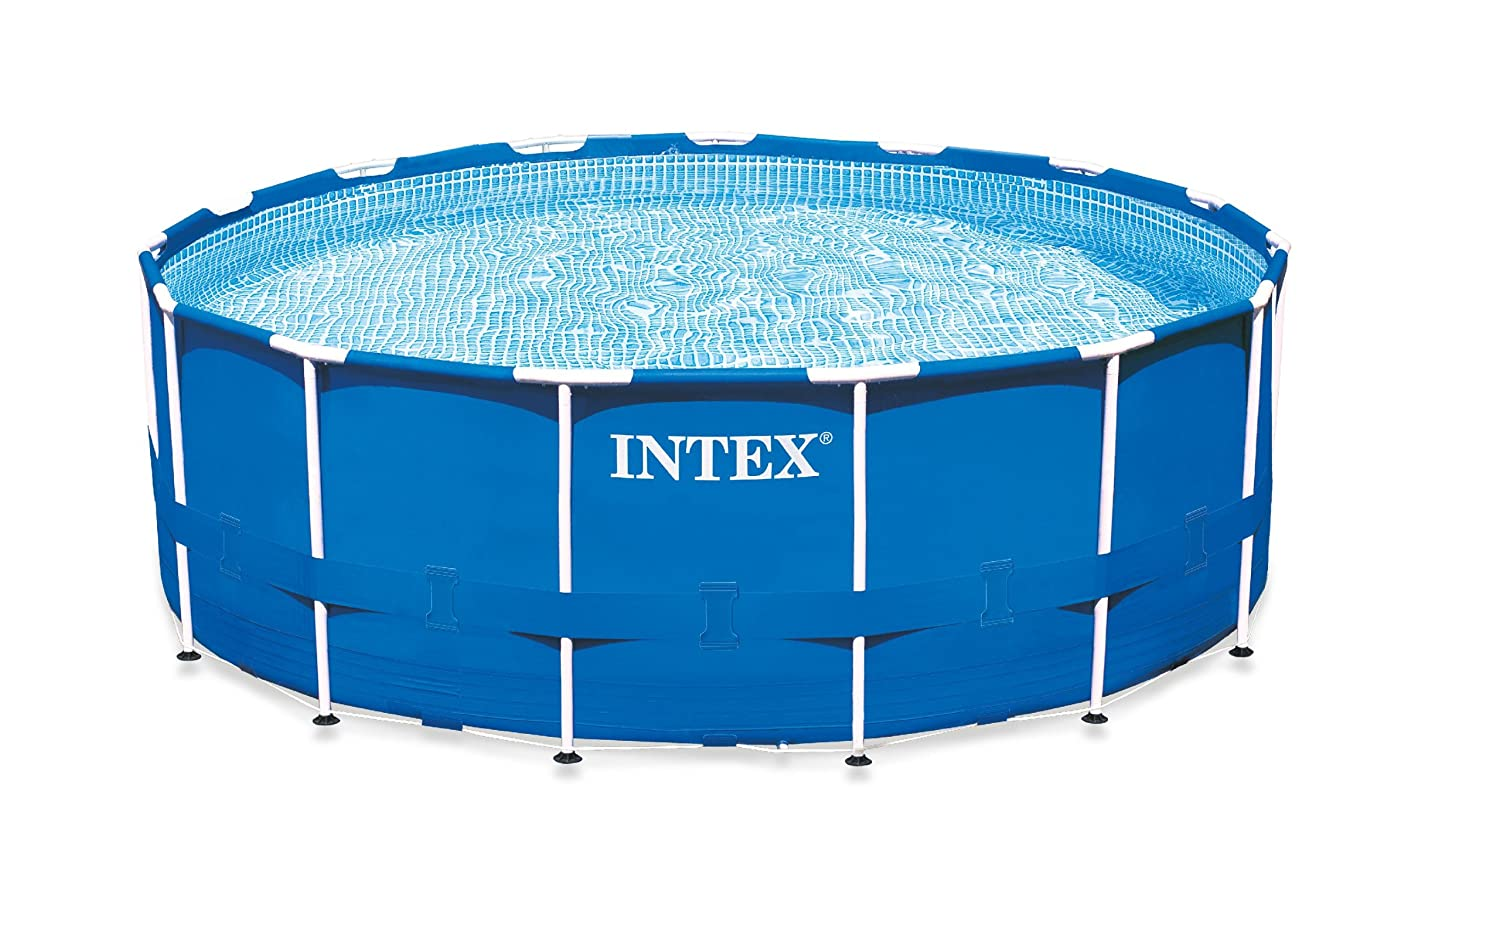 Intex 15 foot by 42 inch round metal frame pool set review - Steel frame pool ...